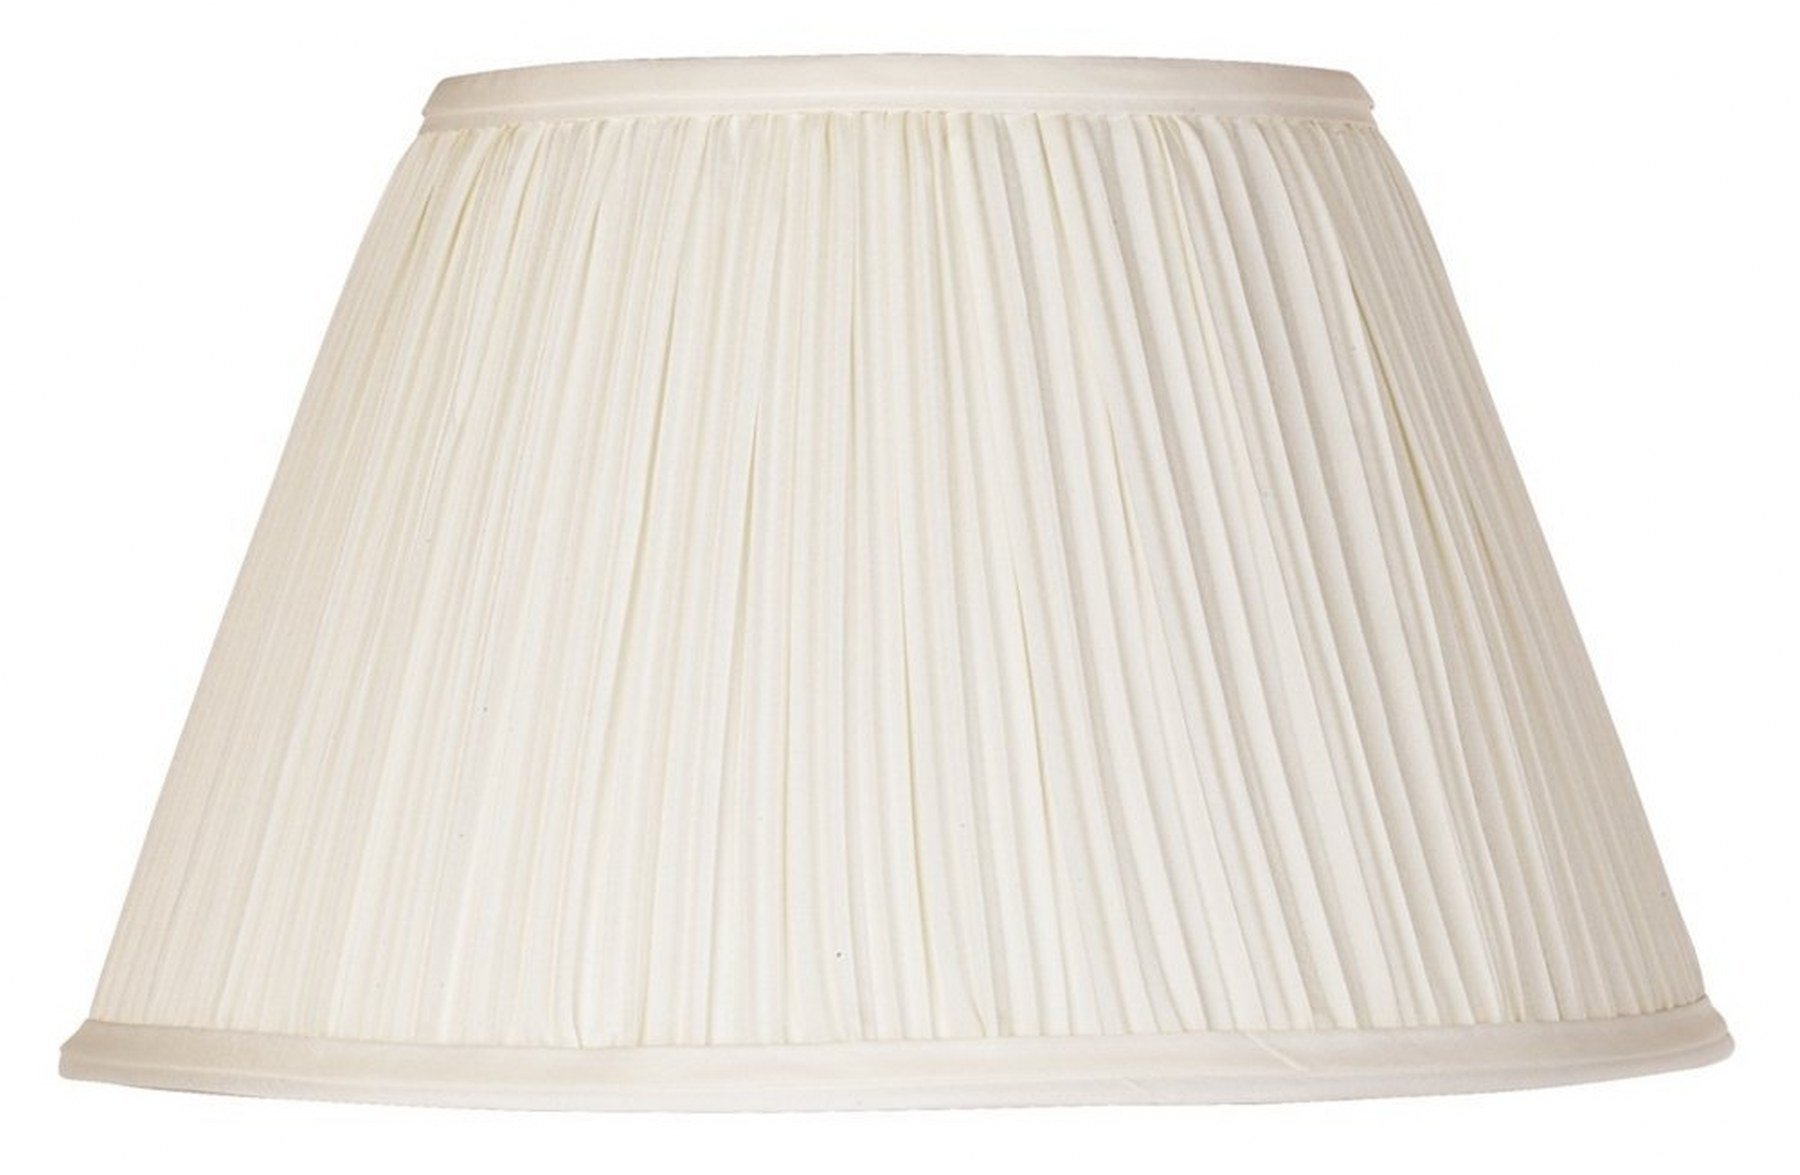 Upgradelights 12 Inch Washer Lamp Shade Replacement in Pleated Eggshell